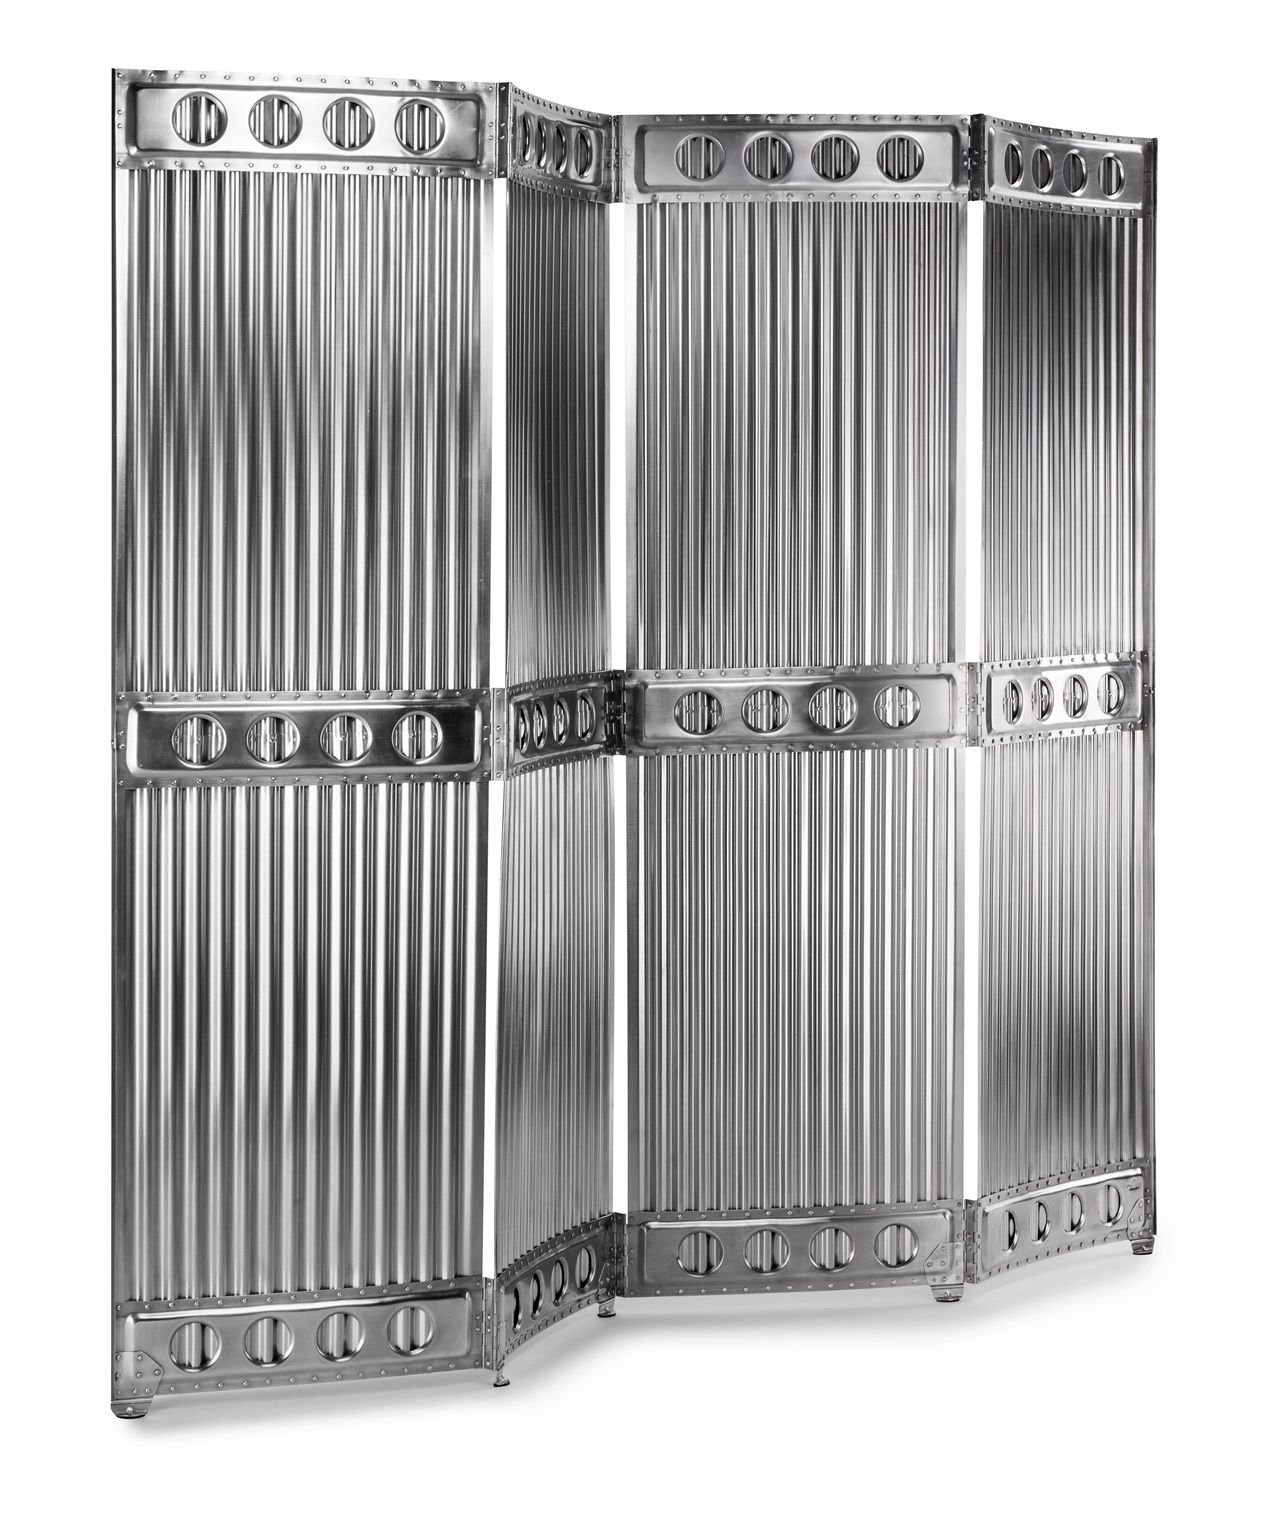 Corrugated Metal Room Divider The Screen Is Made By Hand From Thin Corrugated Aluminum Sheets Designed And Made In Germany By Aero 1946